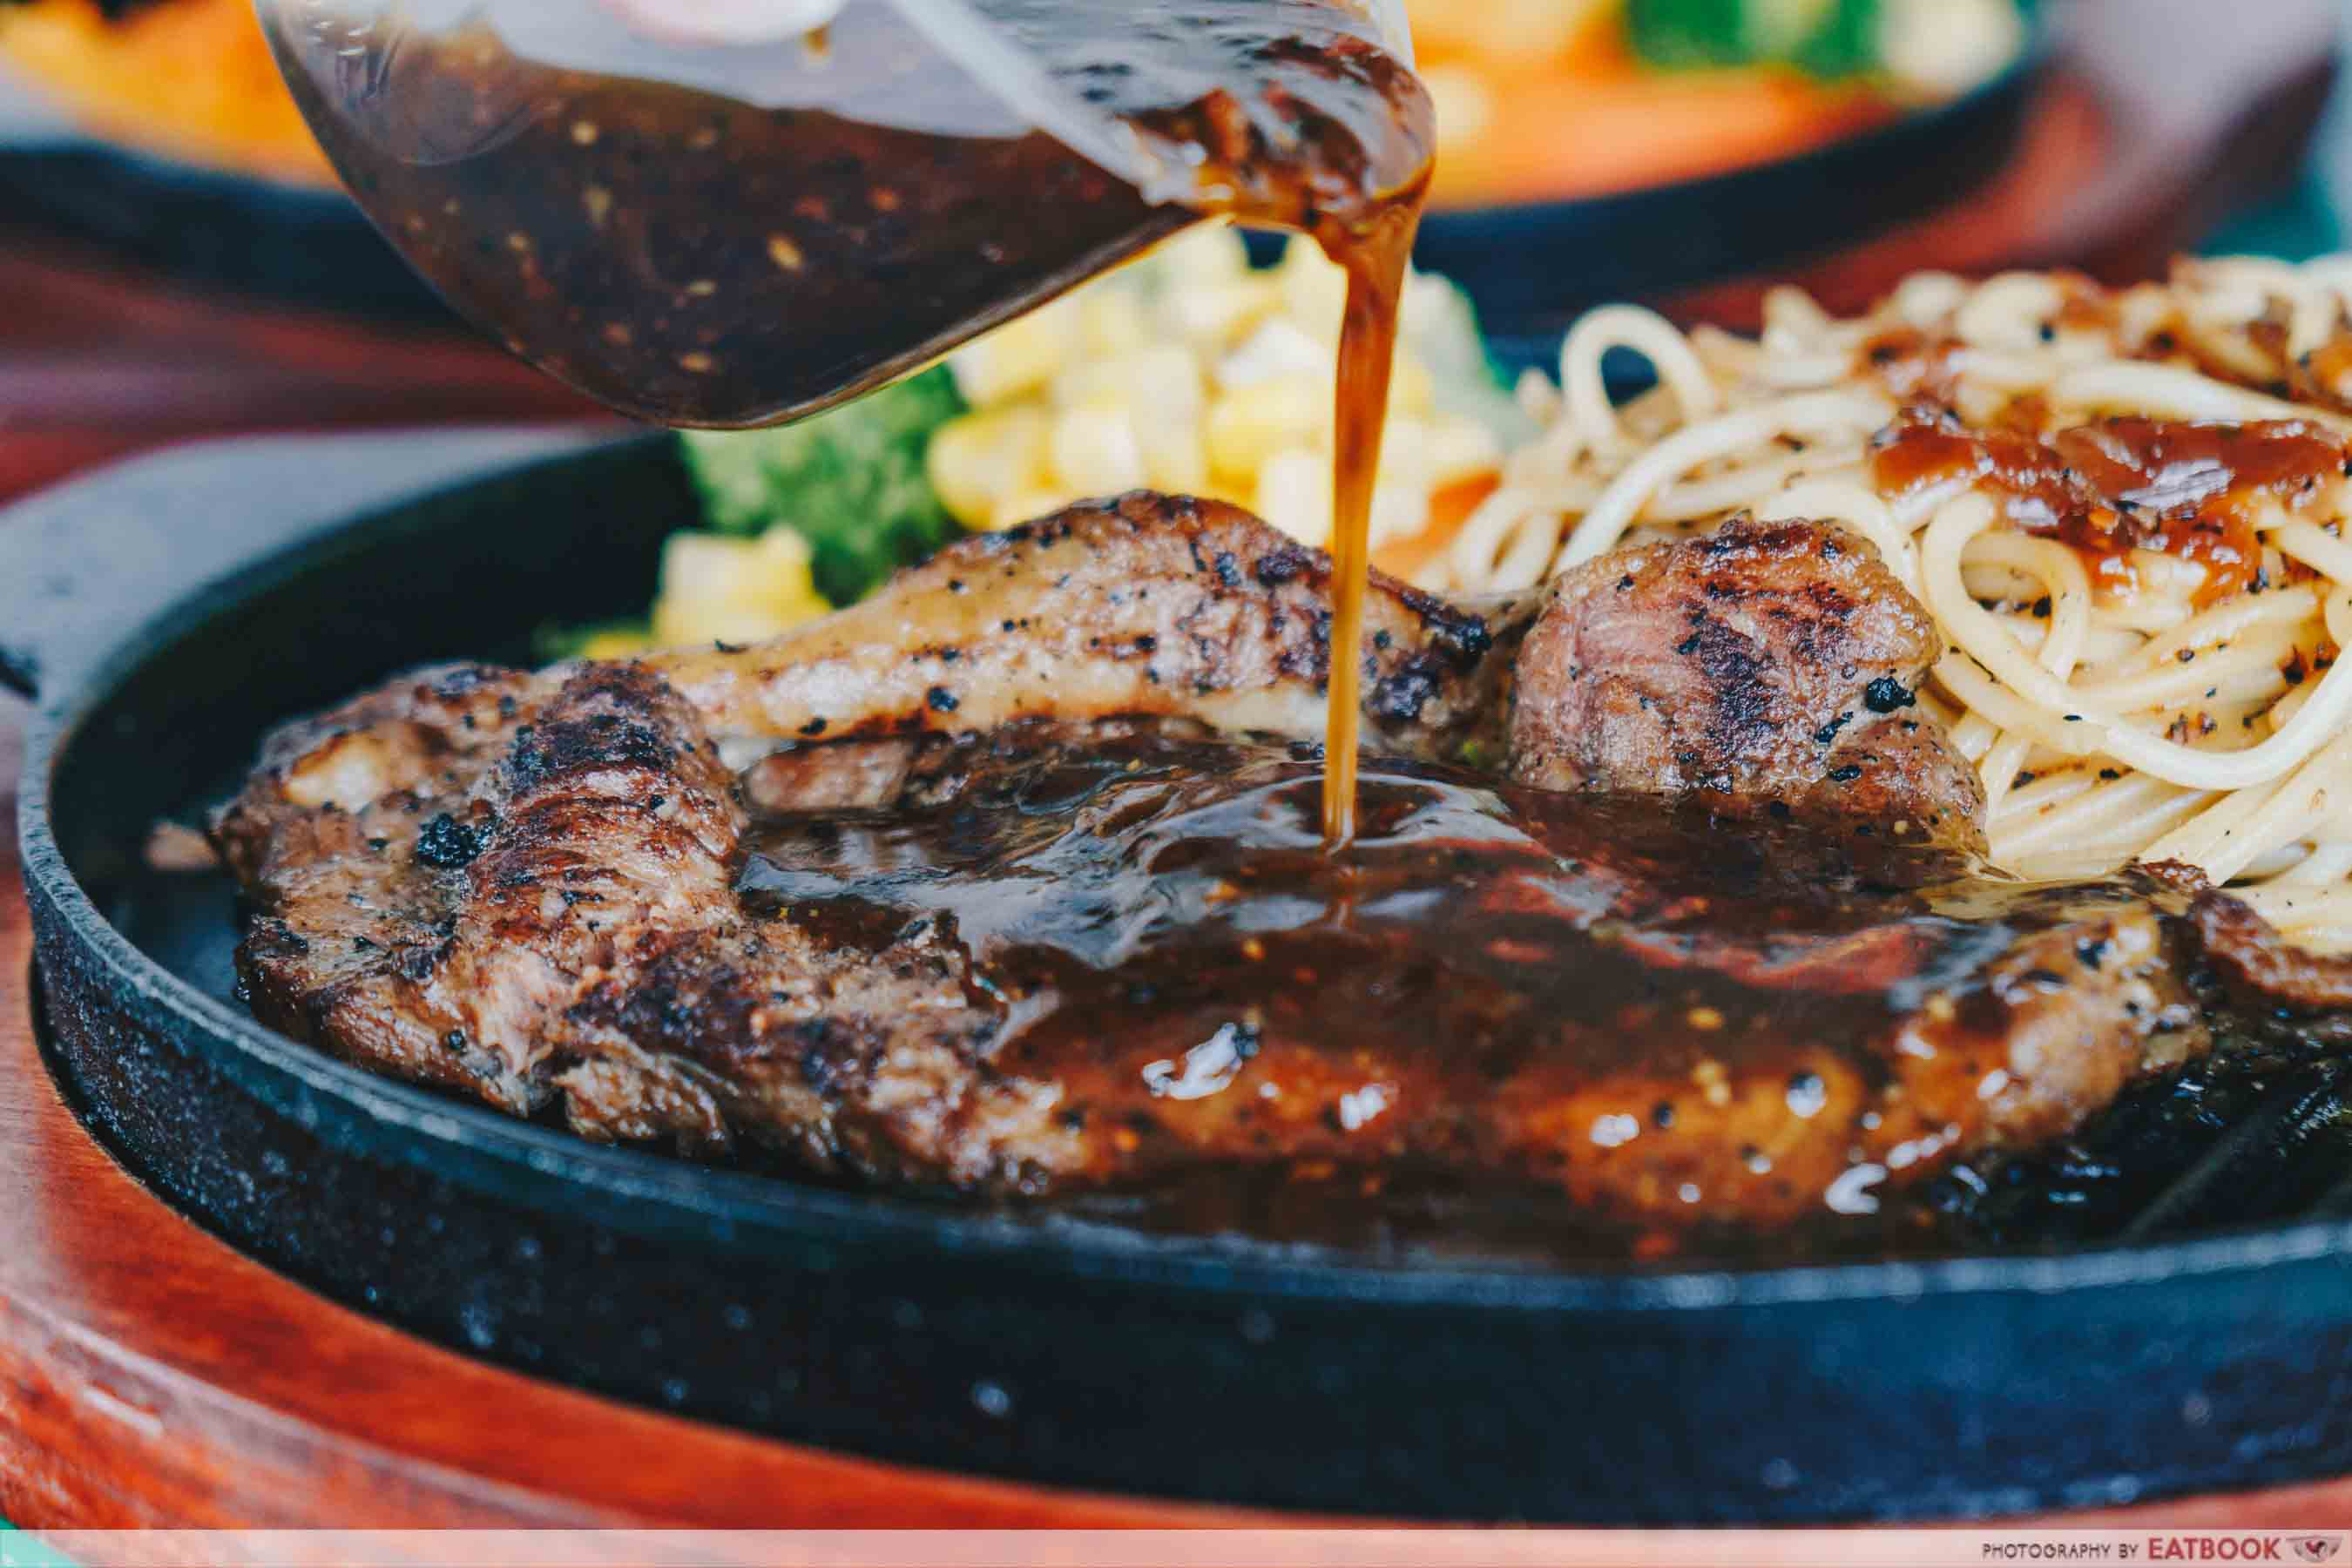 BIG BOYS Sizzling - NZ sirloin steak